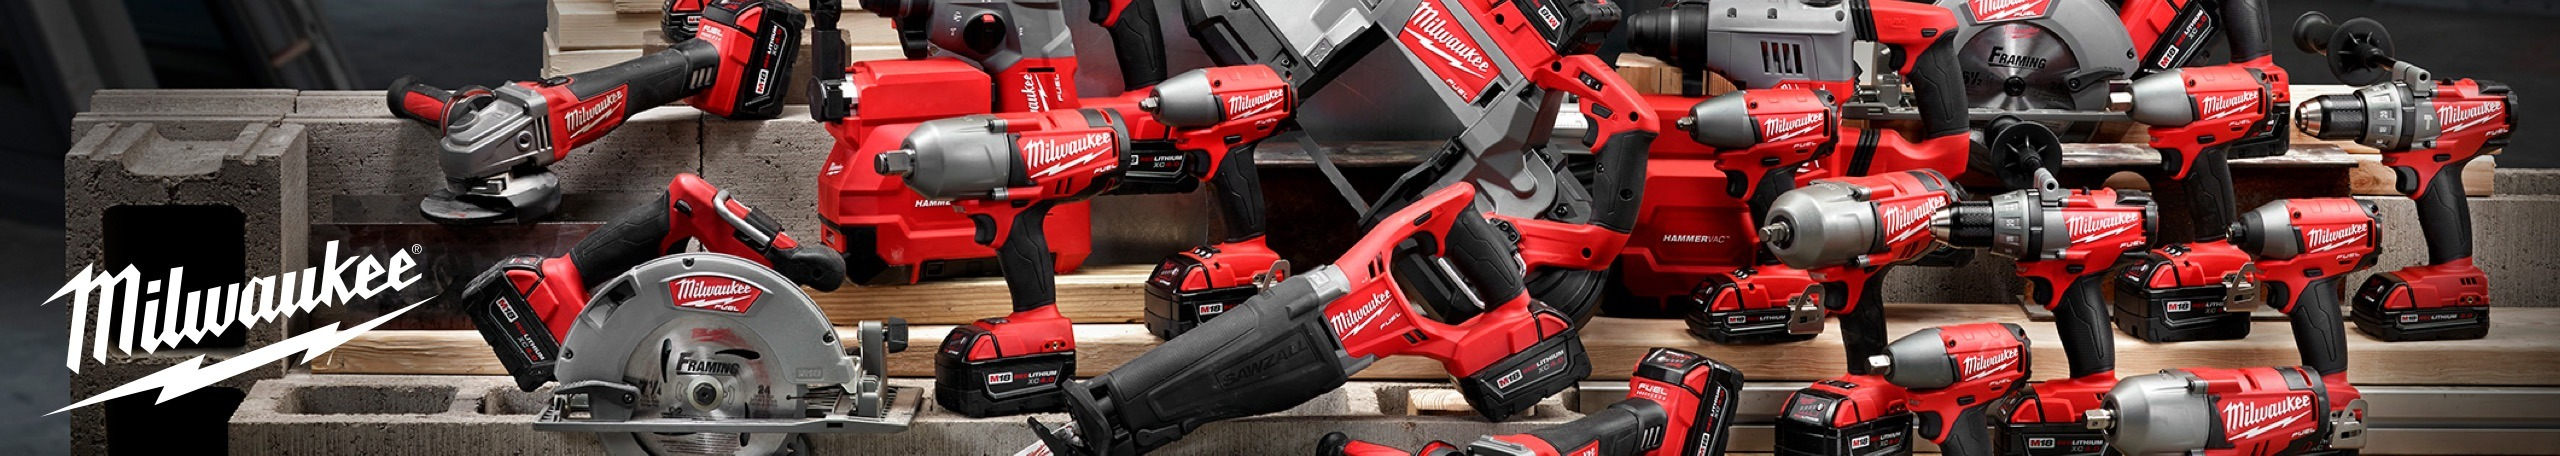 More about Milwaukee power tools from Bender Lumber